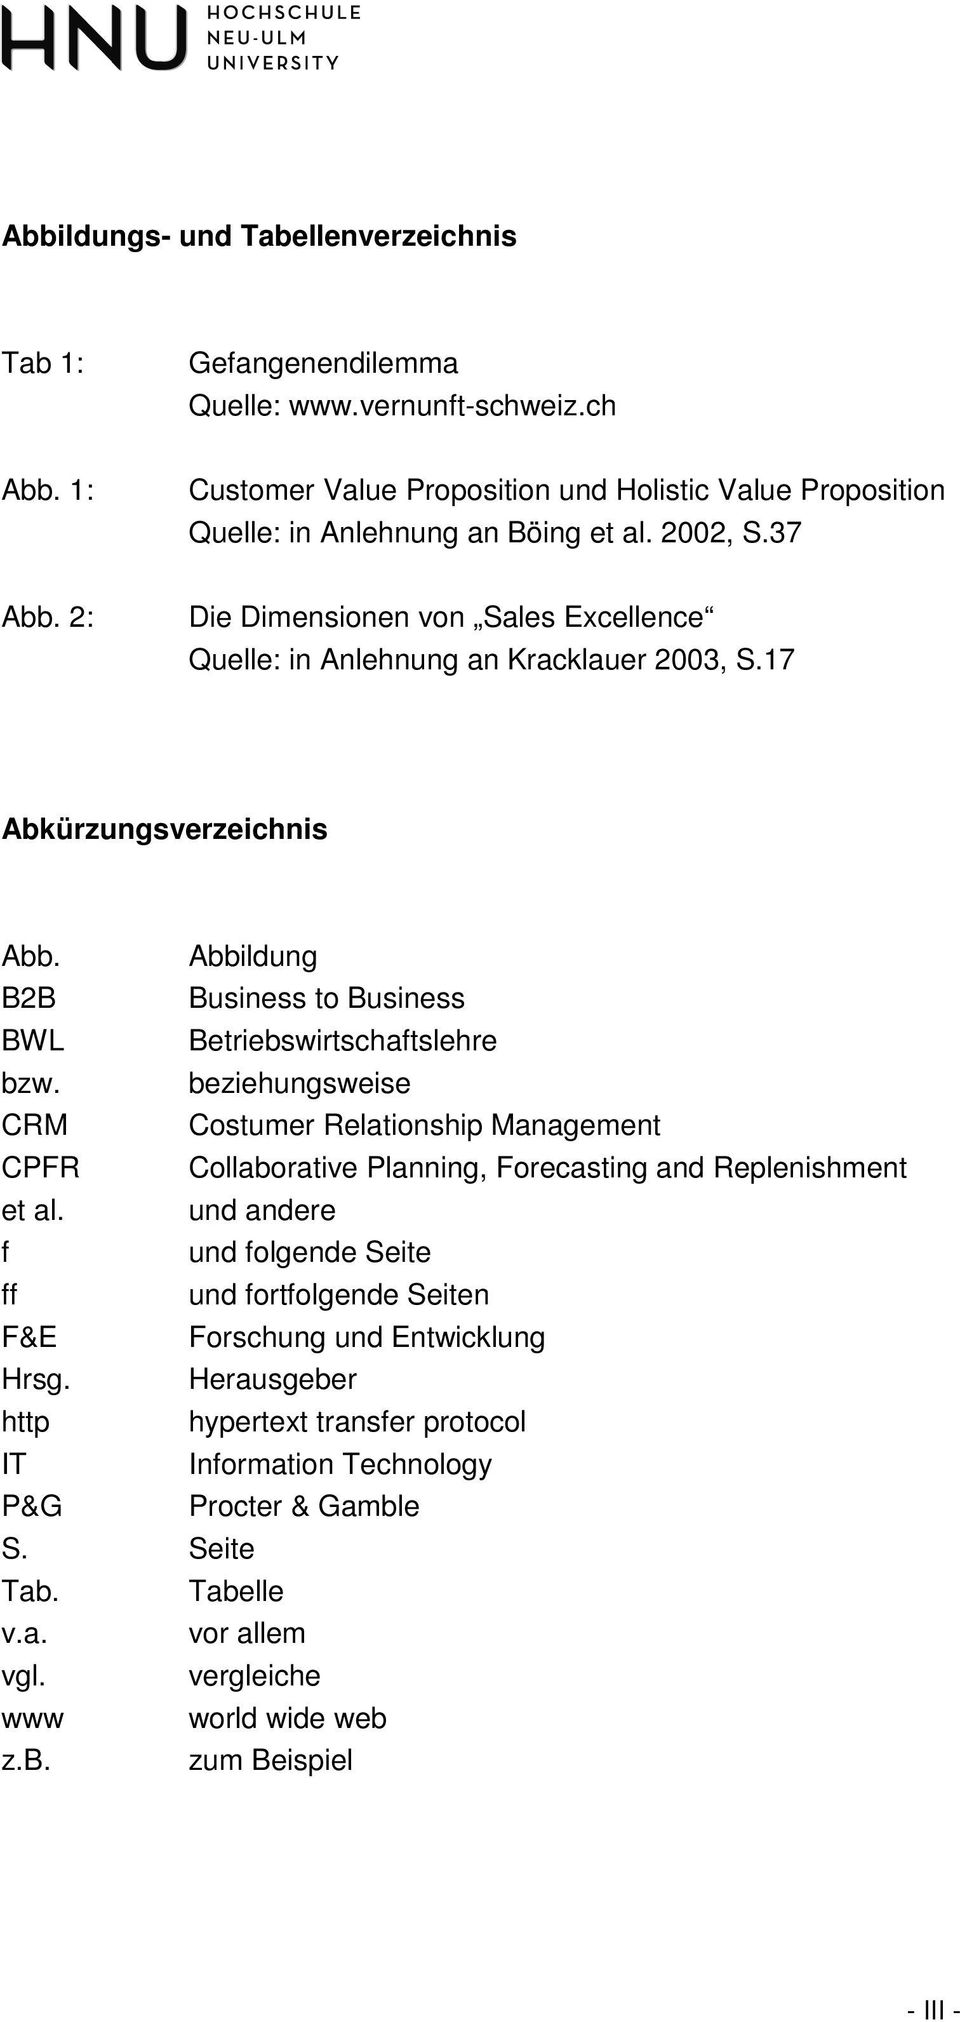 beziehungsweise CRM Costumer Relationship Management CPFR Collaborative Planning, Forecasting and Replenishment et al.